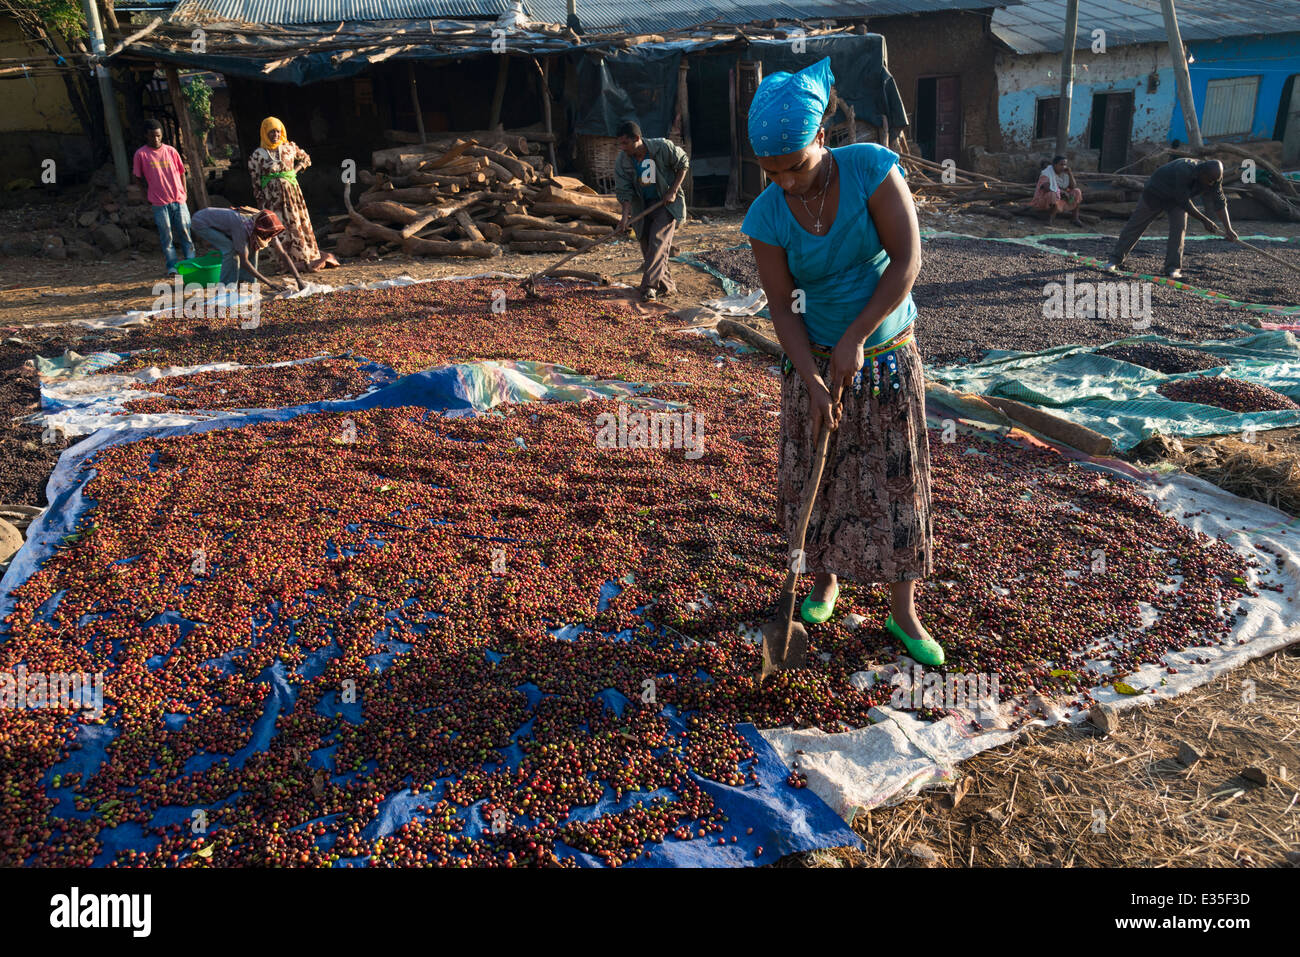 Coffee beans drying in the sun. Afaf. Zege peninsula. Lake Tana. Northern Ethiopia. - Stock Image